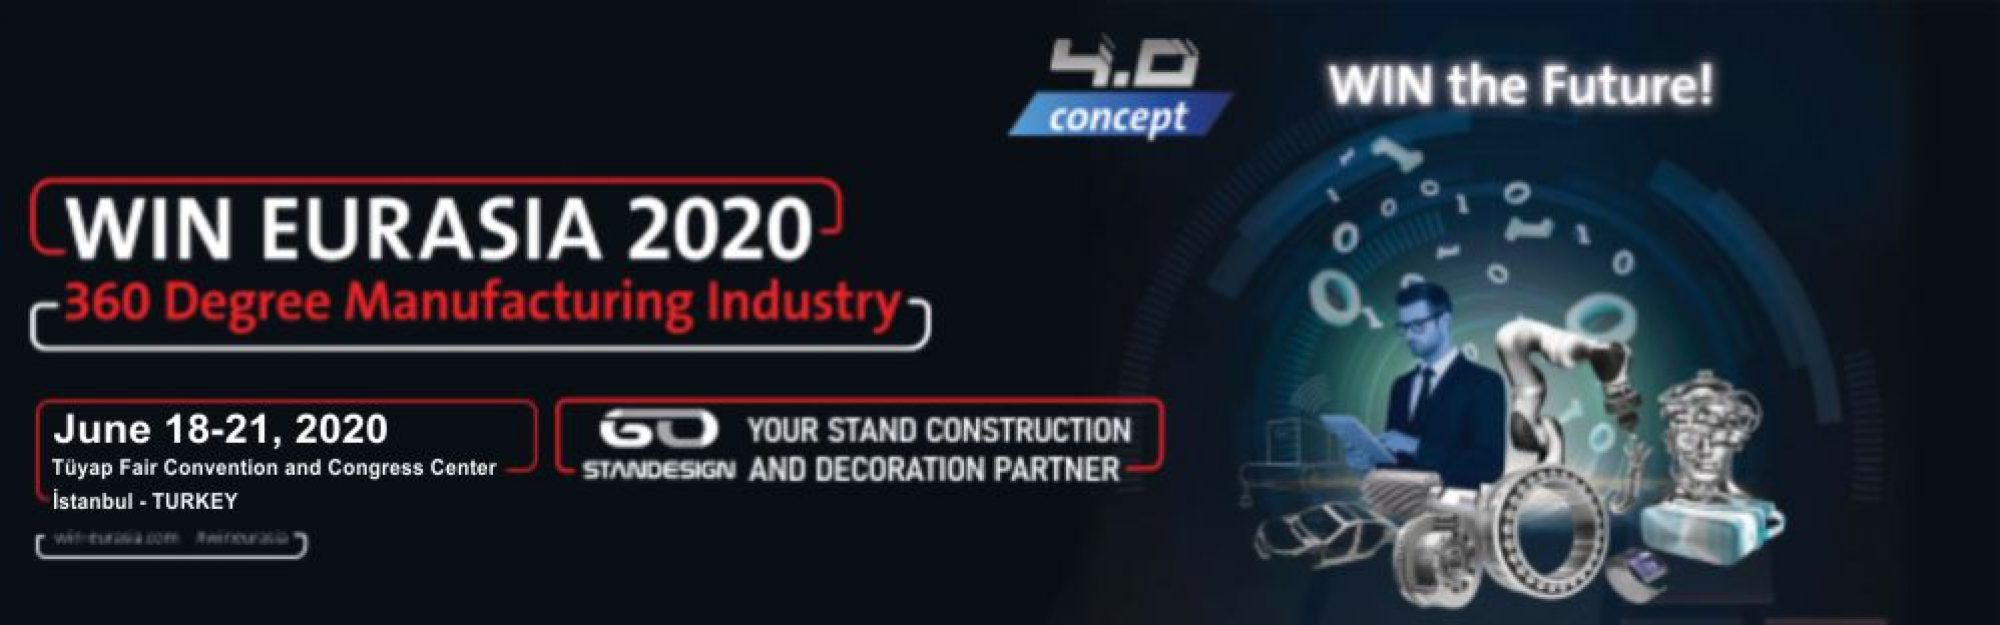 WIN Eurasia 2020 Exhibition Hero